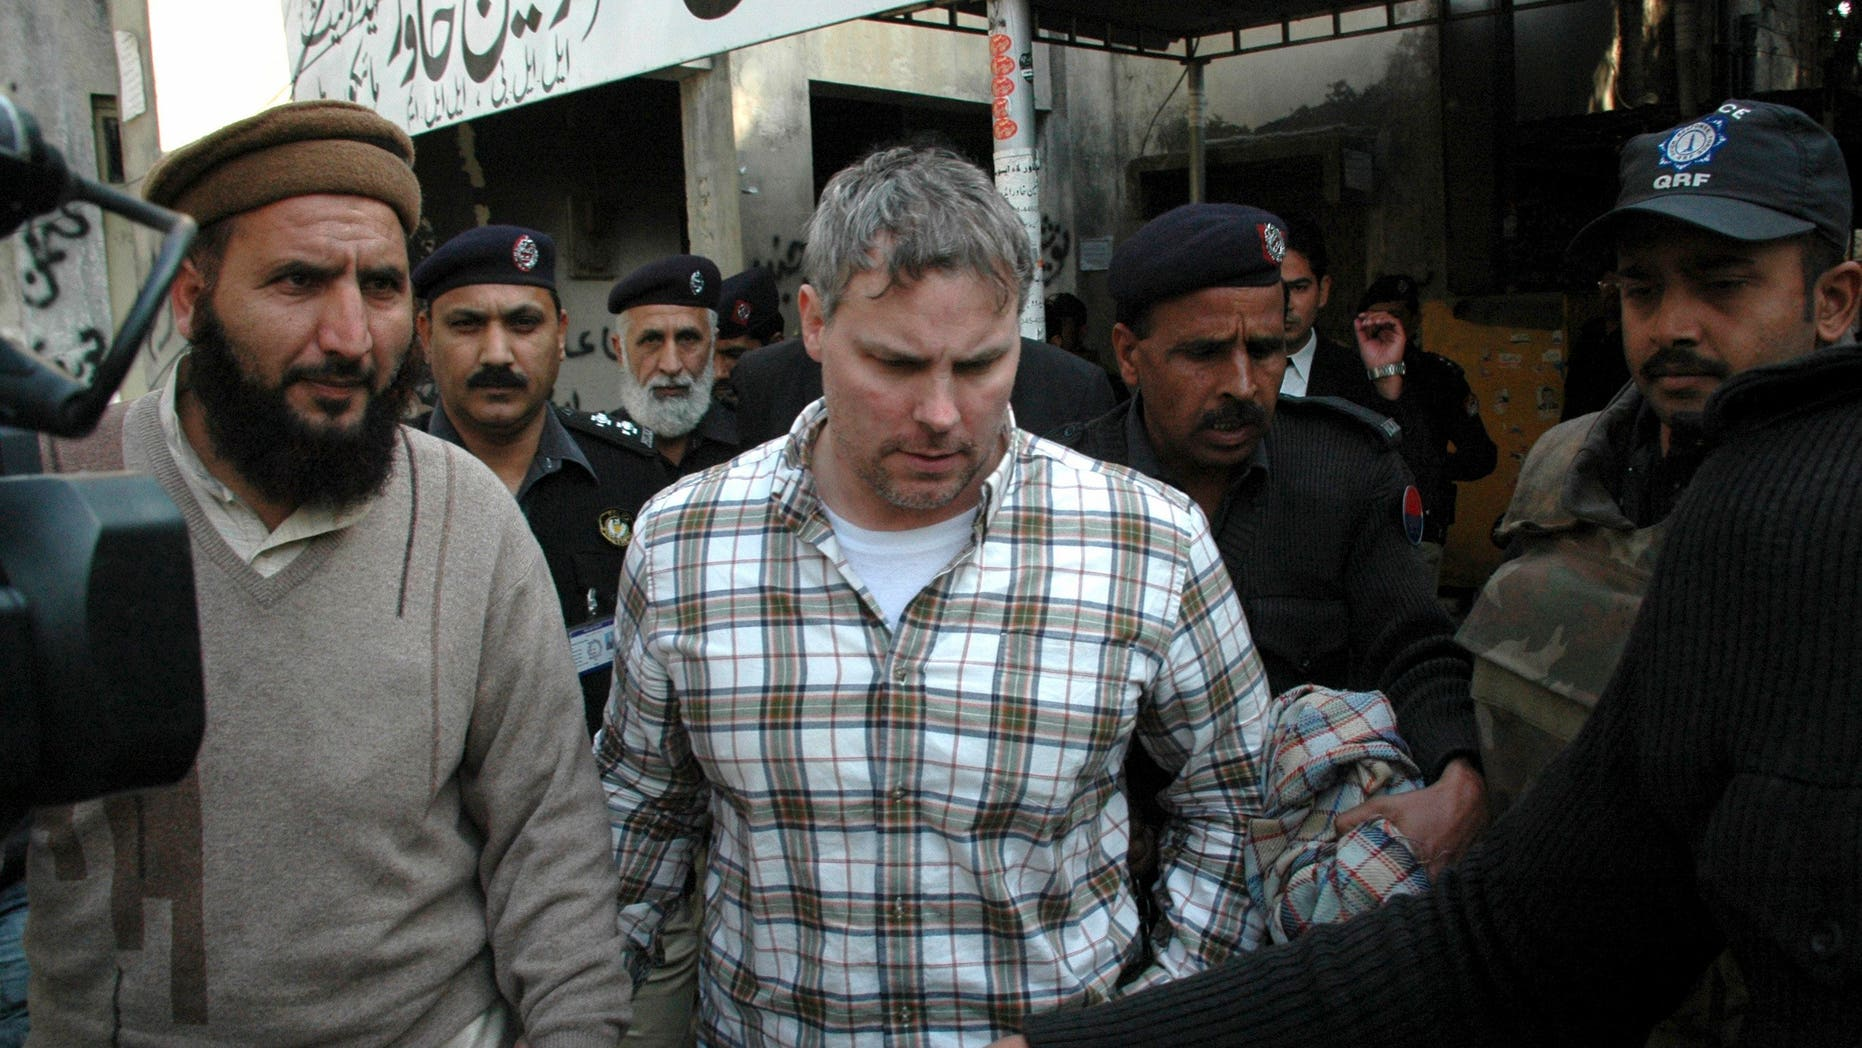 Jan. 28, 2011: Pakistani security officials escort Raymond Allen Davis, center, to a local court in Lahore, Pakistan. The Associated Press has learned that Davis, an American jailed in Pakistan after the fatal shooting of two armed men, was secretly working for the CIA.